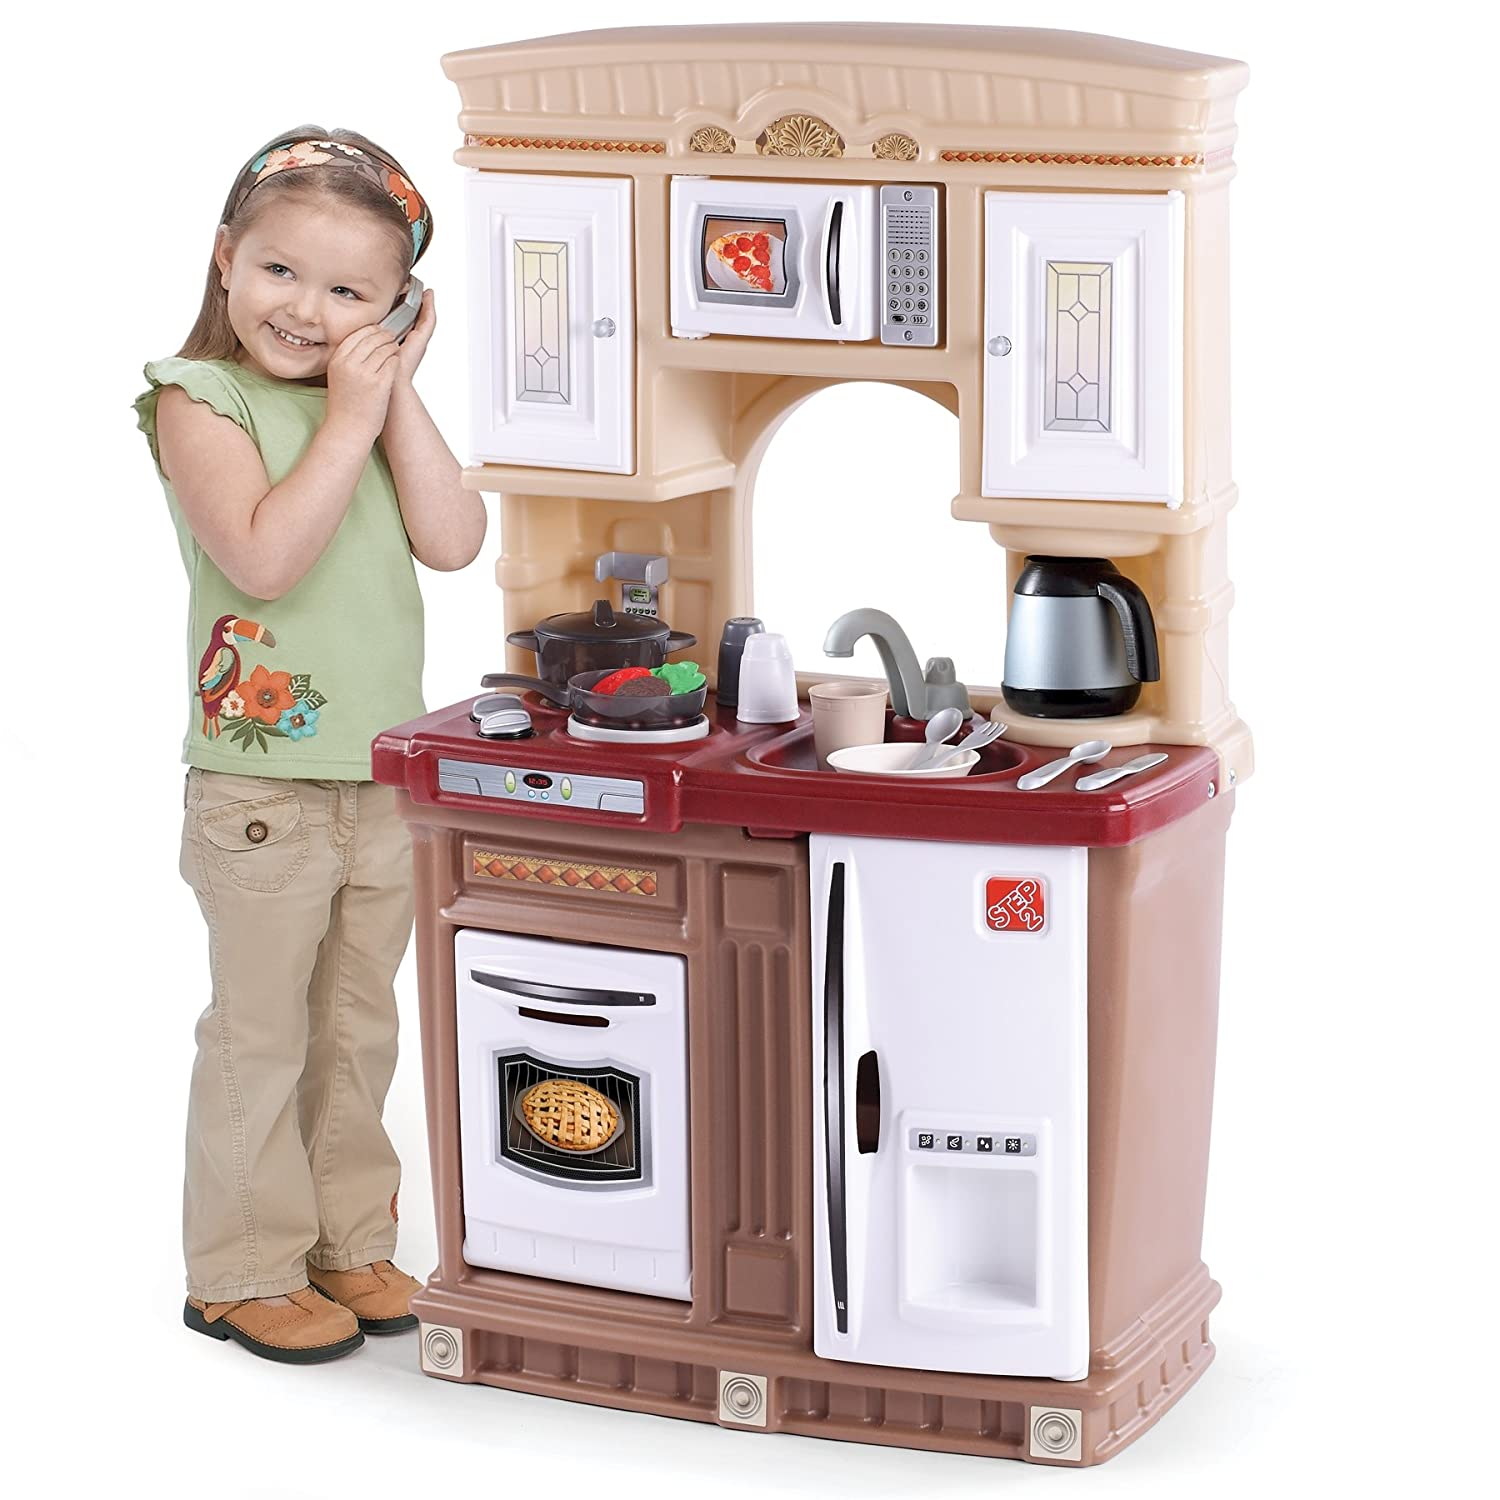 Best gift for a 6 year old girl may 2018 reviews and for Kids kitchen set sale